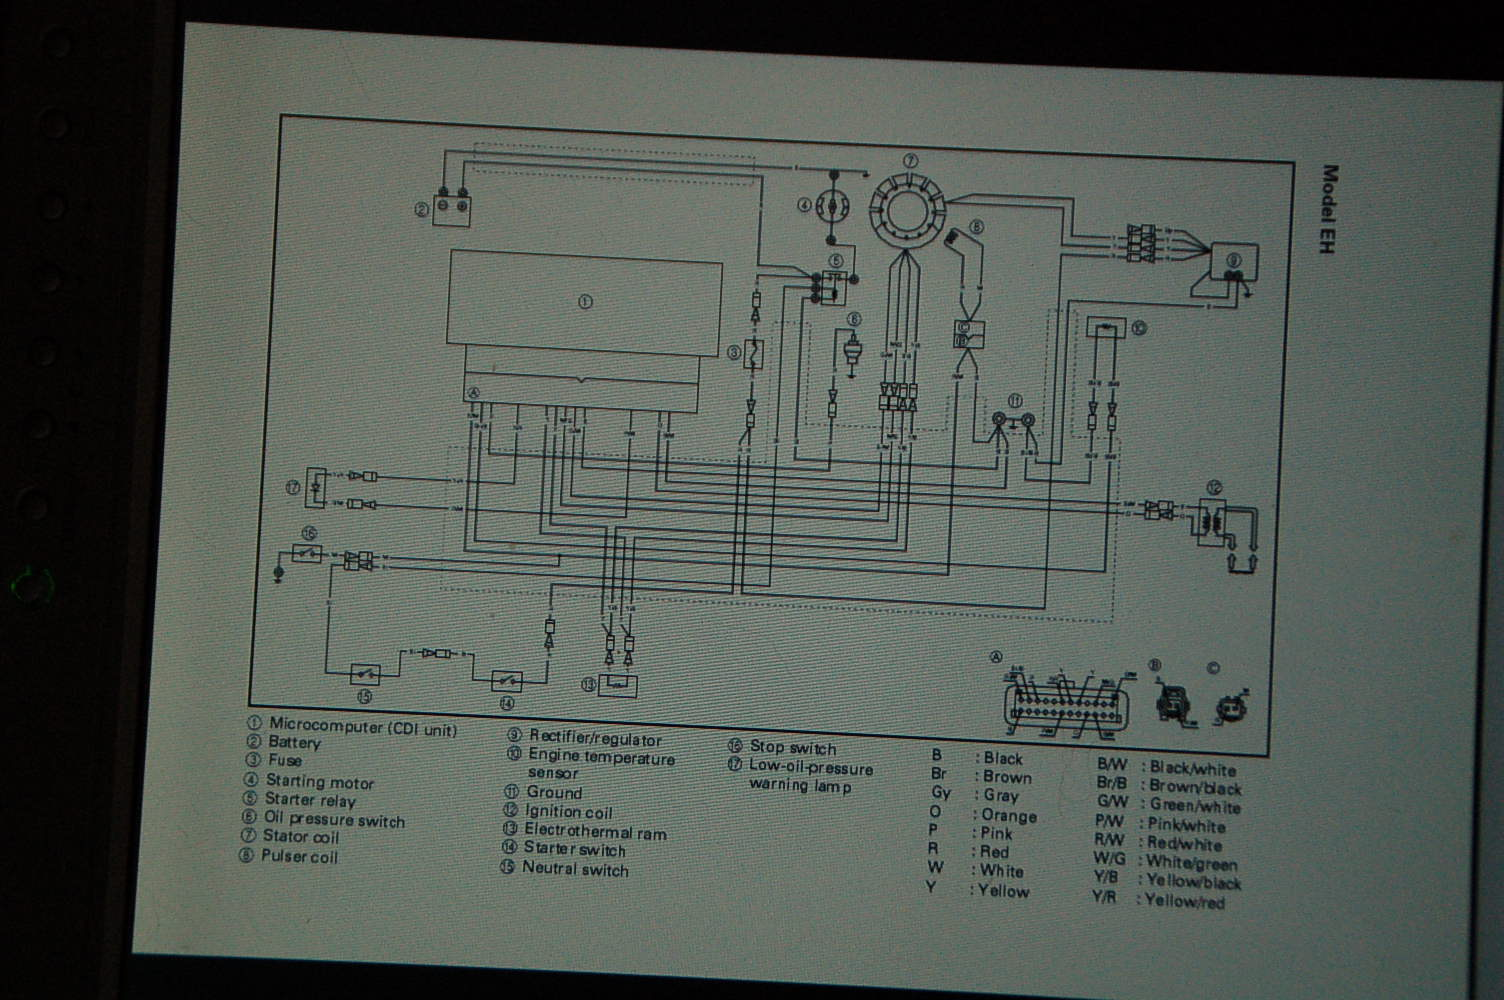 yamaha outboard wiring diagram 2008 yamaha 25 outboard wire Yamaha Outboard Wiring Schematic at readyjetset.co